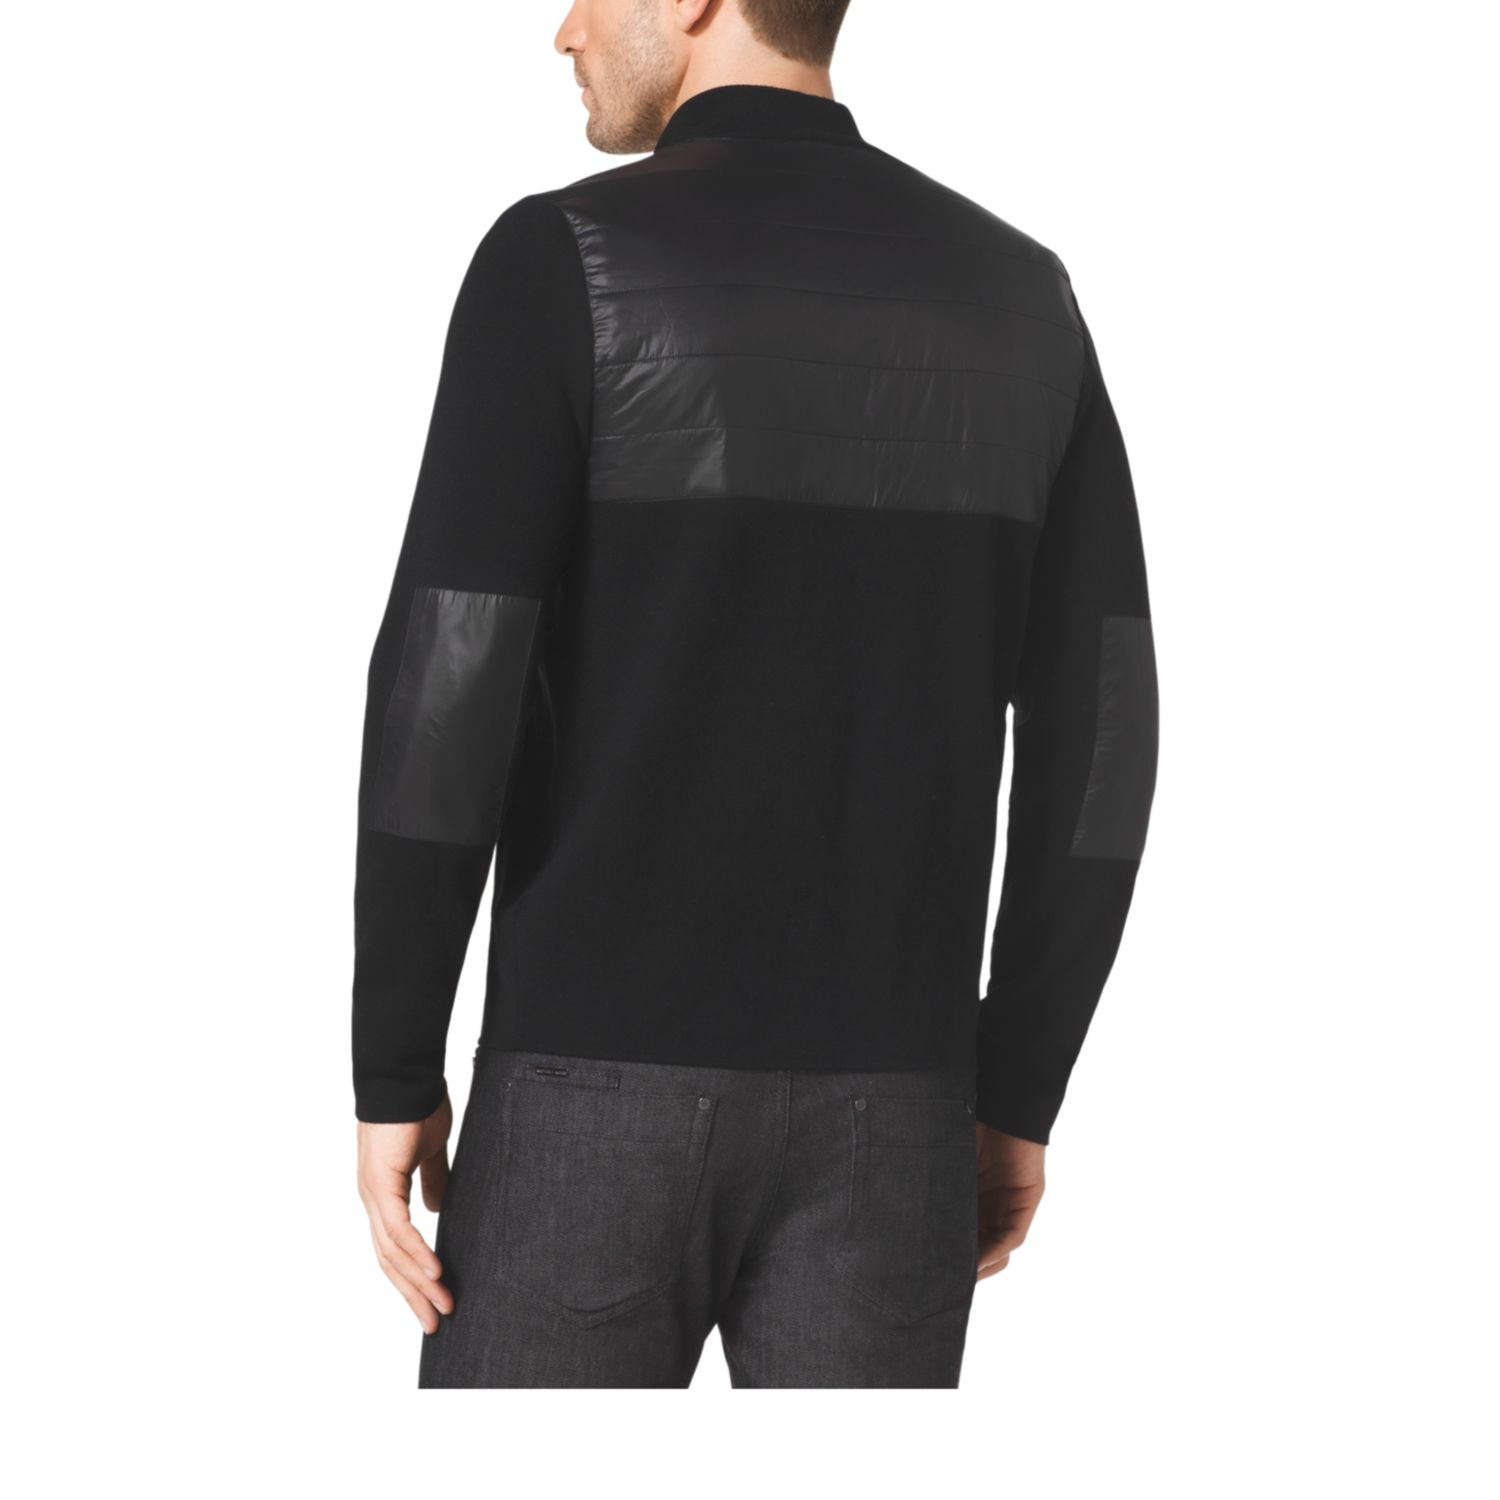 michael kors quilted nylon and wool half zip pullover in black for men lyst. Black Bedroom Furniture Sets. Home Design Ideas